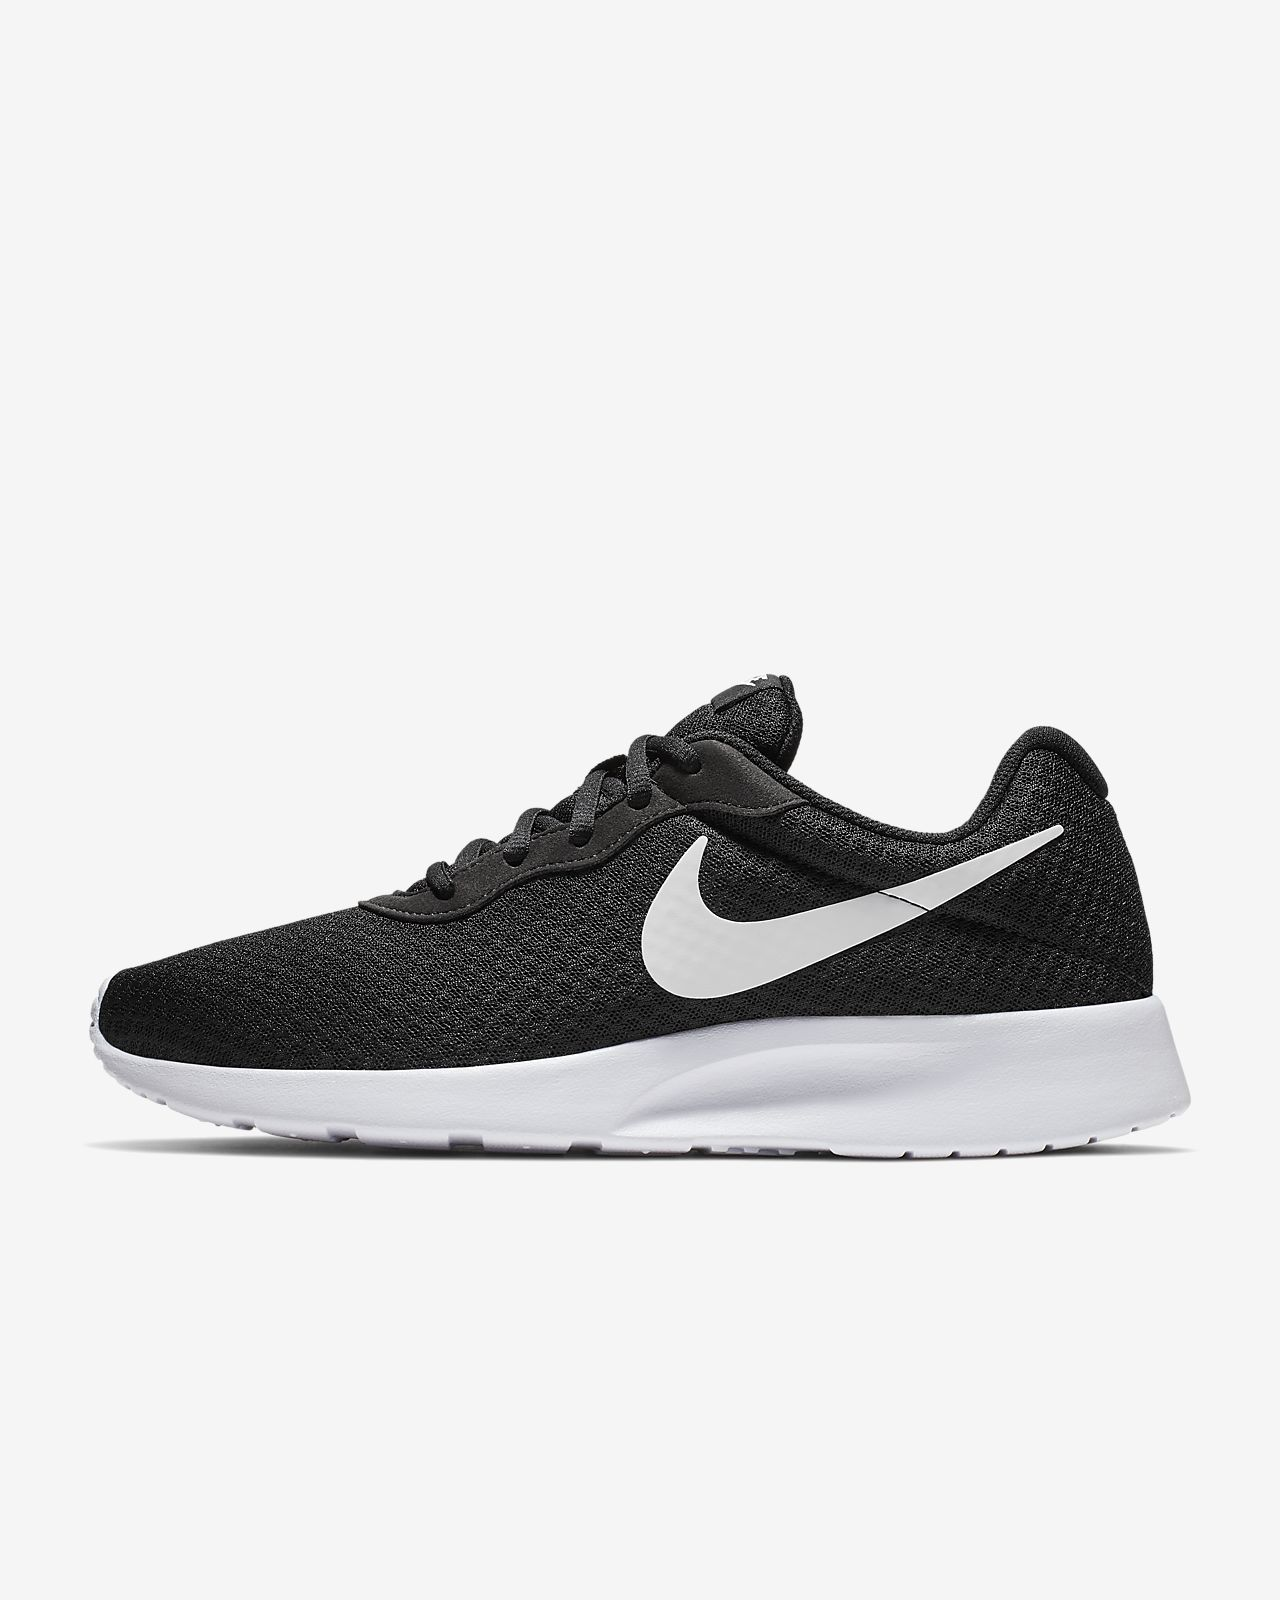 low priced 3df0b dc7c3 Low Resolution Nike Tanjun Men s Shoe Nike Tanjun Men s Shoe